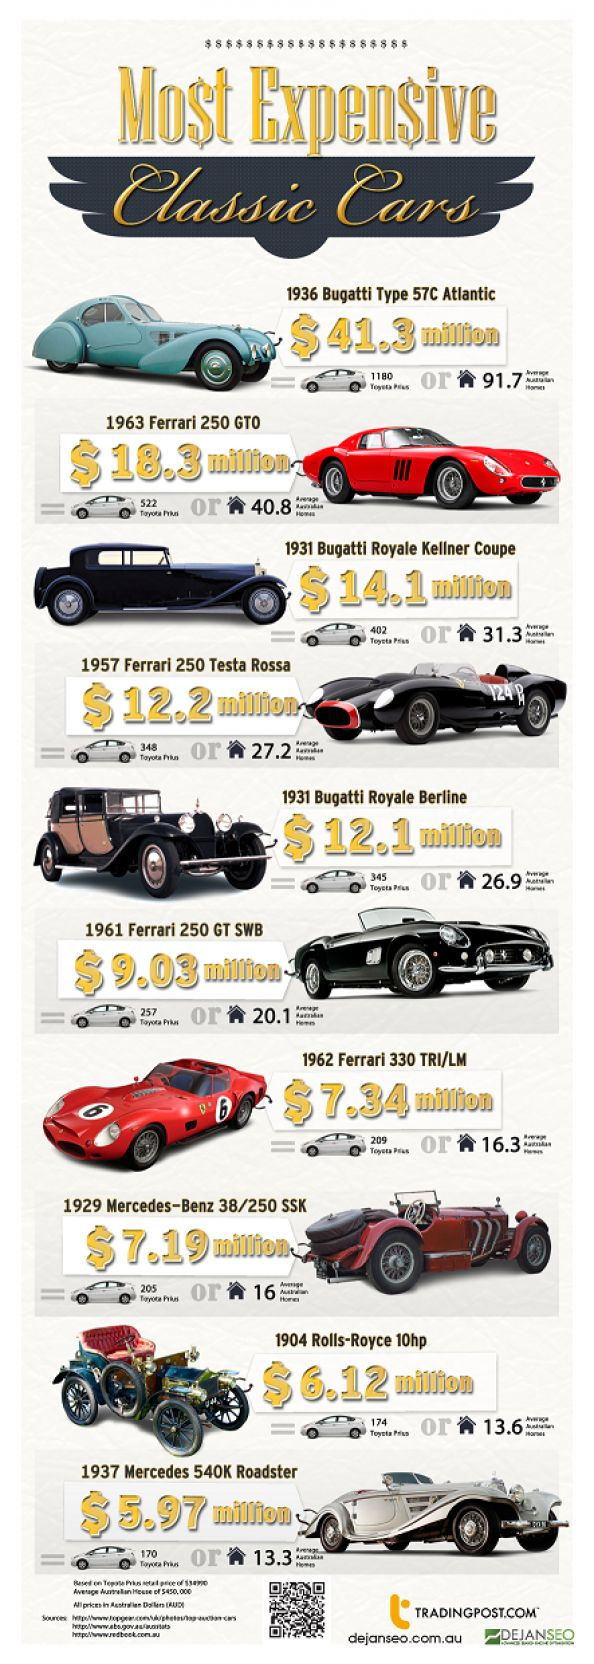 1956 chevrolet belair mjc classic cars pristine - Most Expensive Classic Cars Infographic